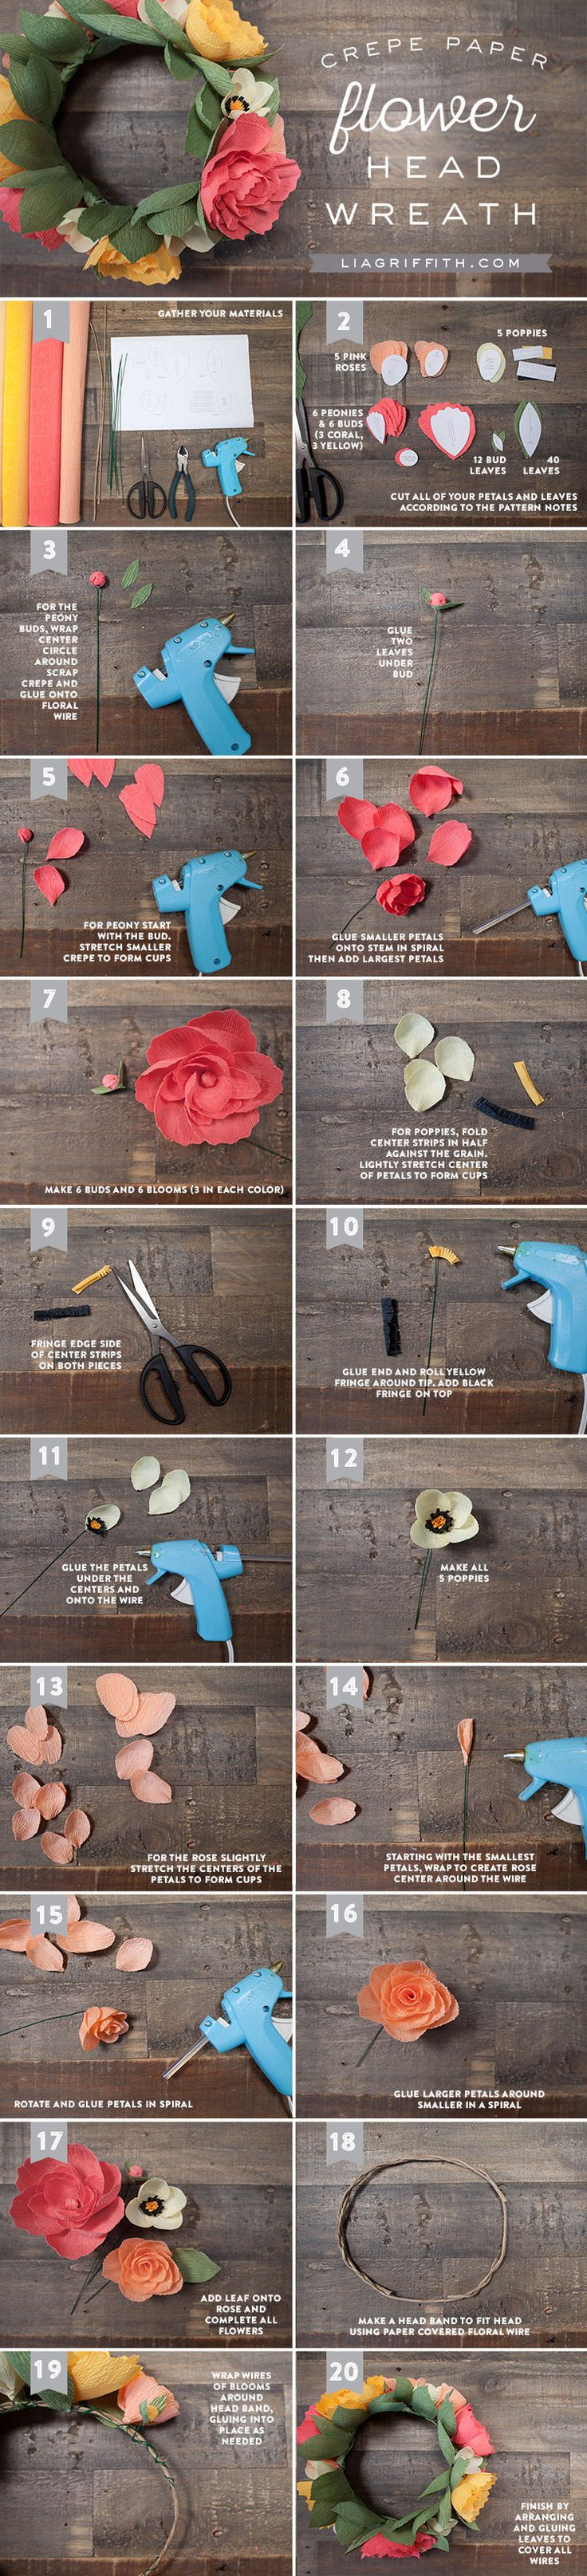 Flower heads for crafts - Diy Crepe Paper Flower Head Wreath Pictures Photos And Images For Facebook Tumblr